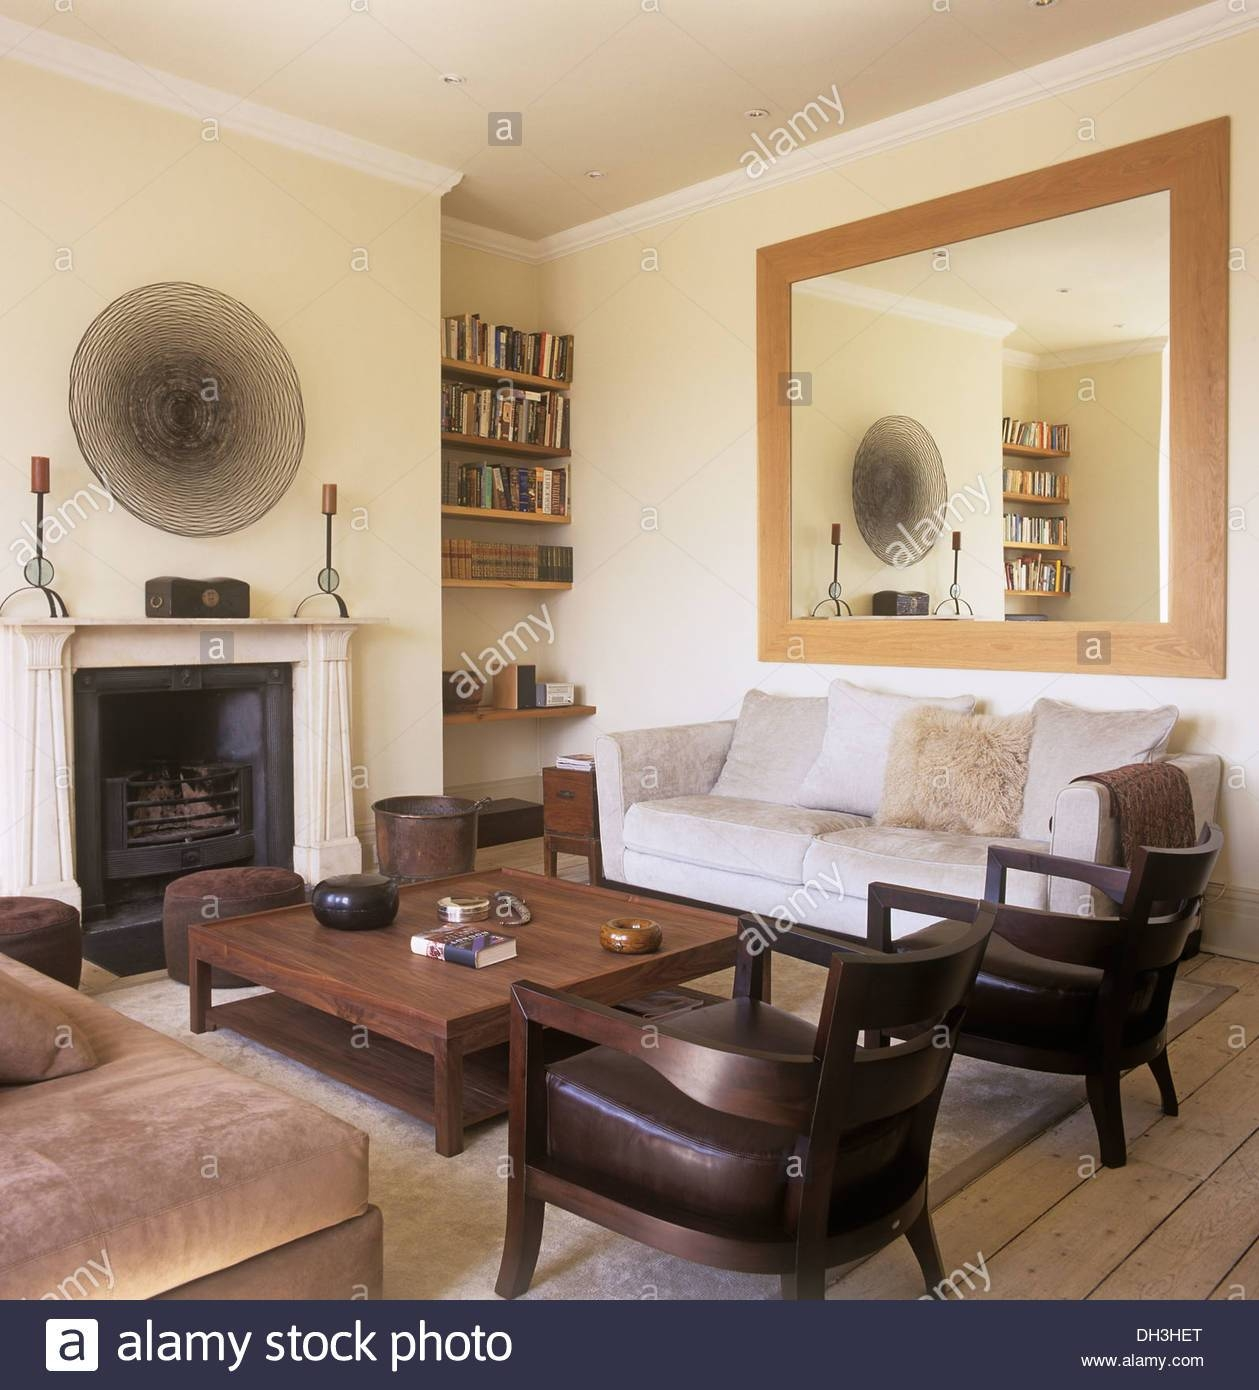 Large Mirror Above Sofa In Townhouse Living Room With Wooden with regard to Mirror Above Sofas (Image 7 of 15)